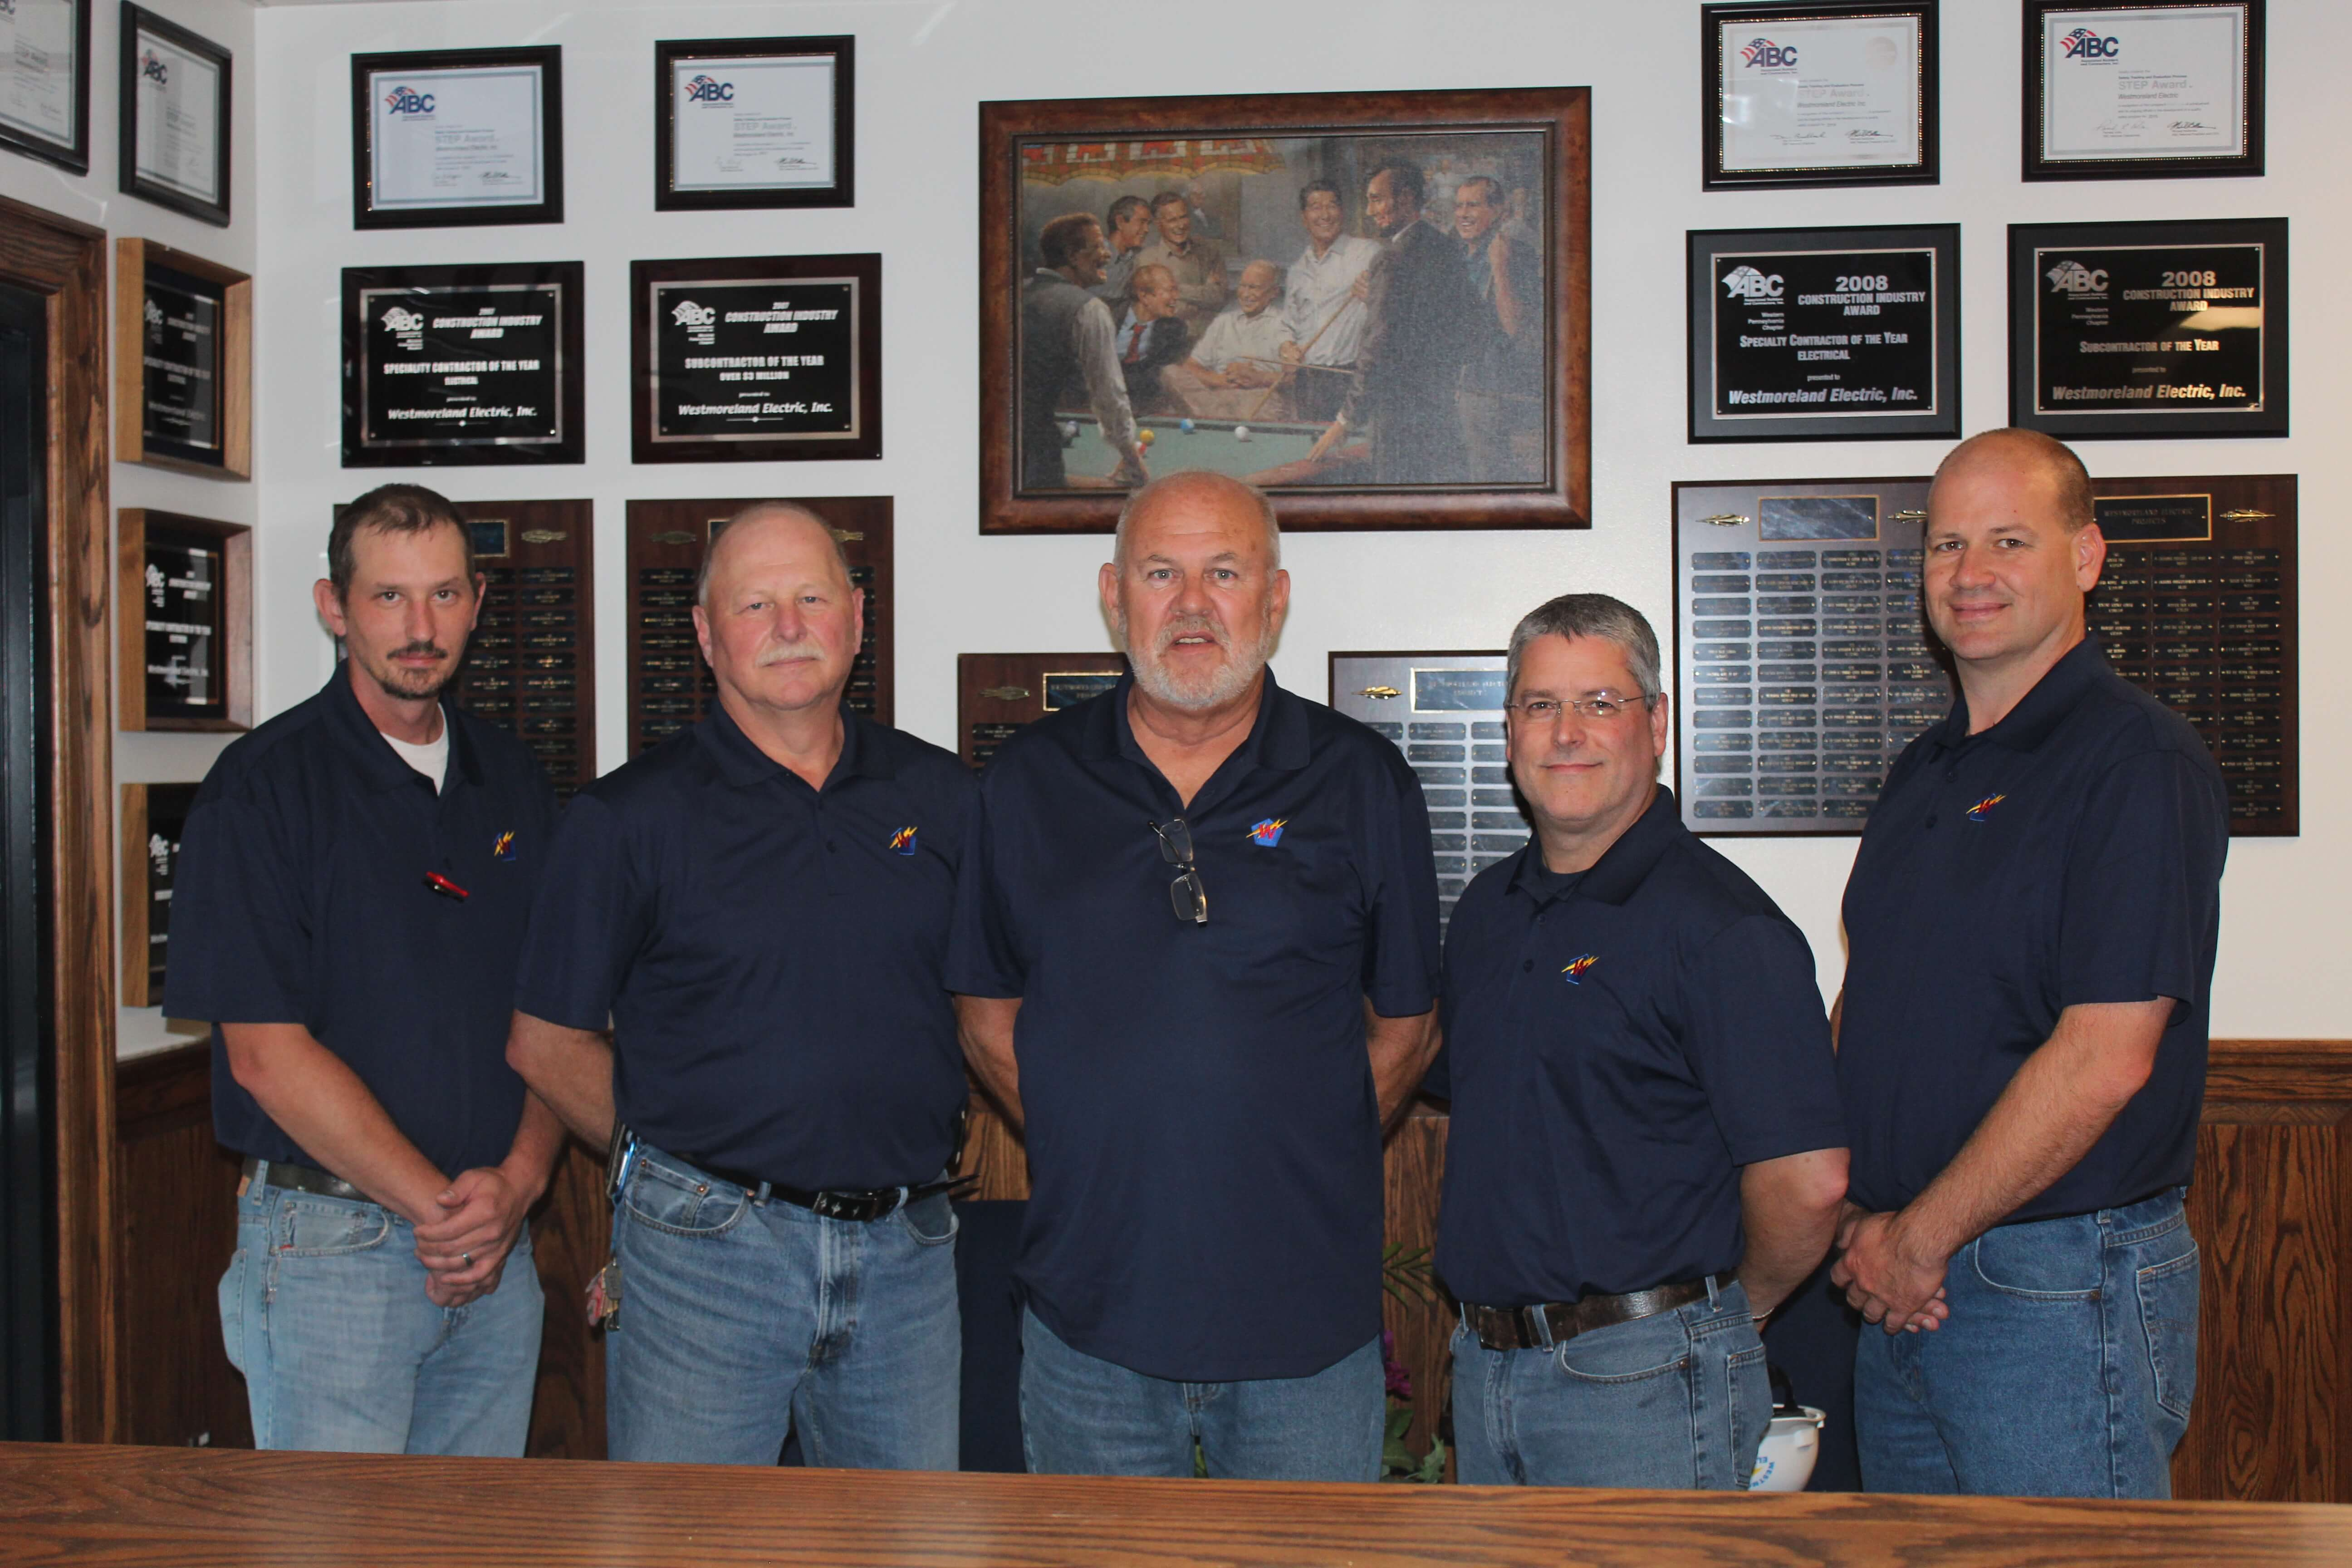 Westmoreland Electric Project Managers